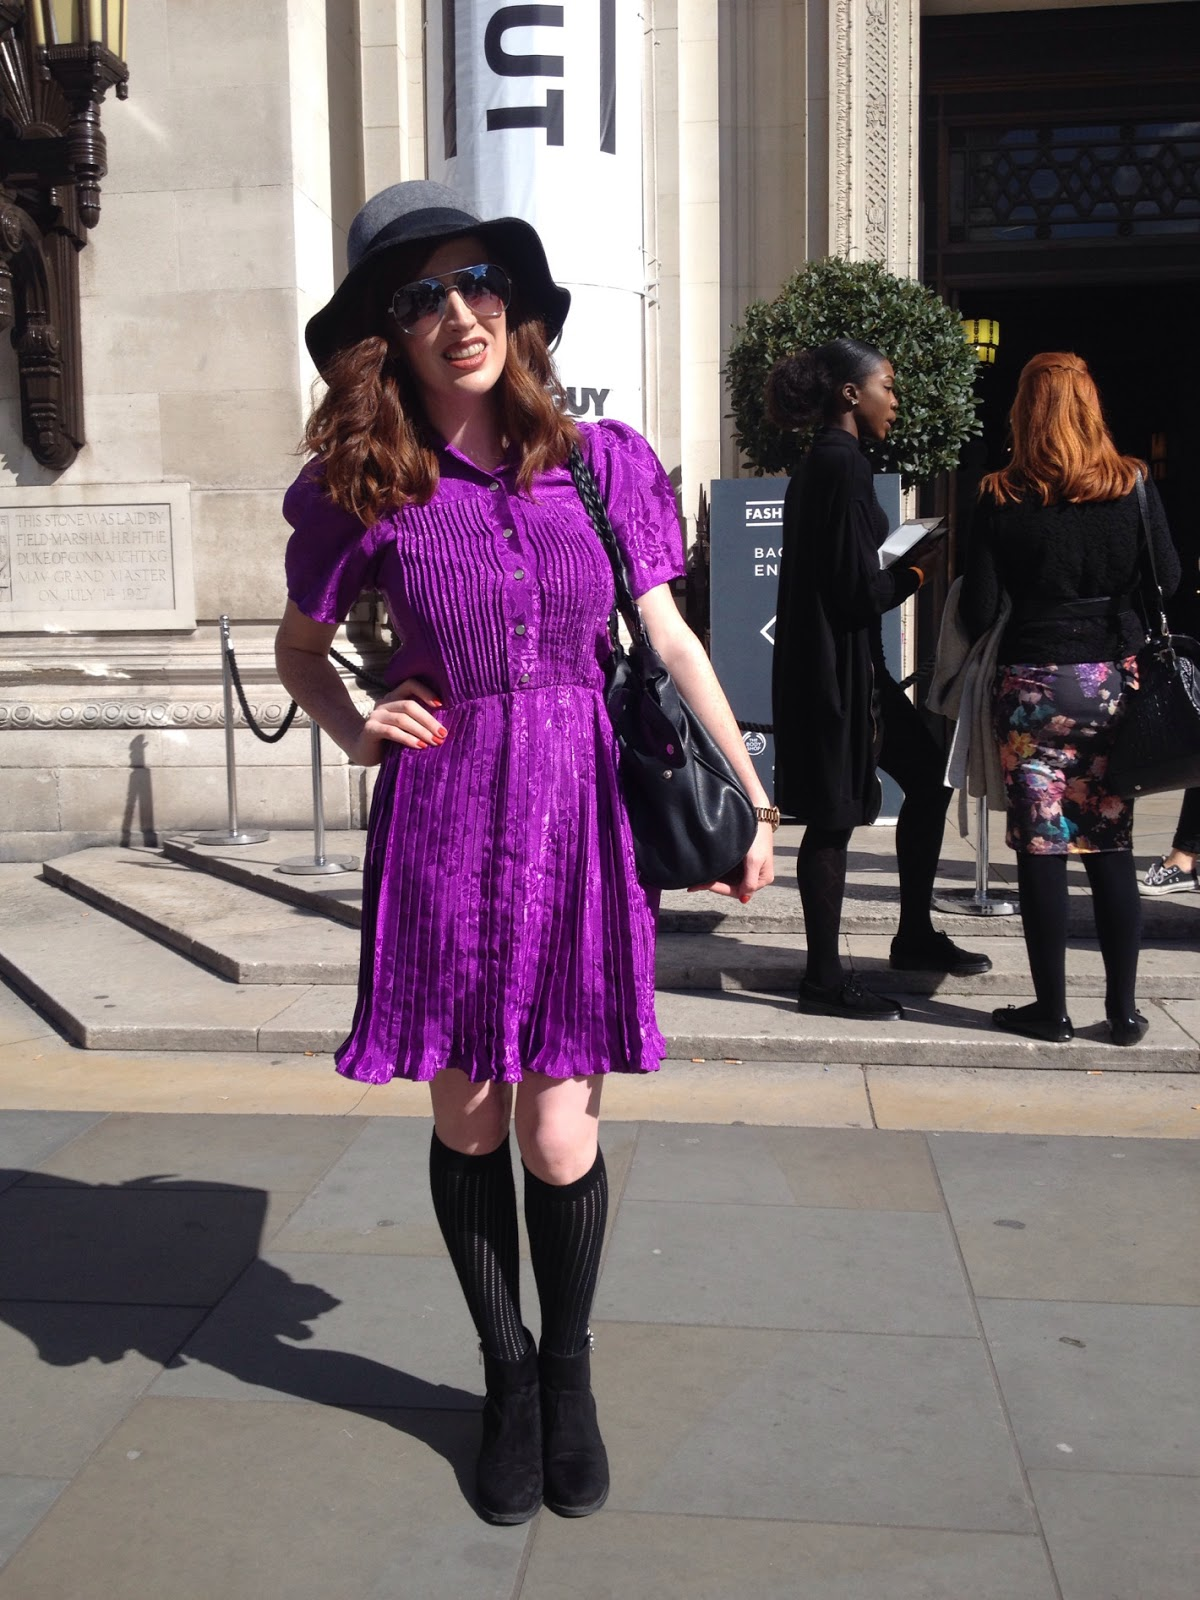 London Fashion Week Beginners Guide BecBoop